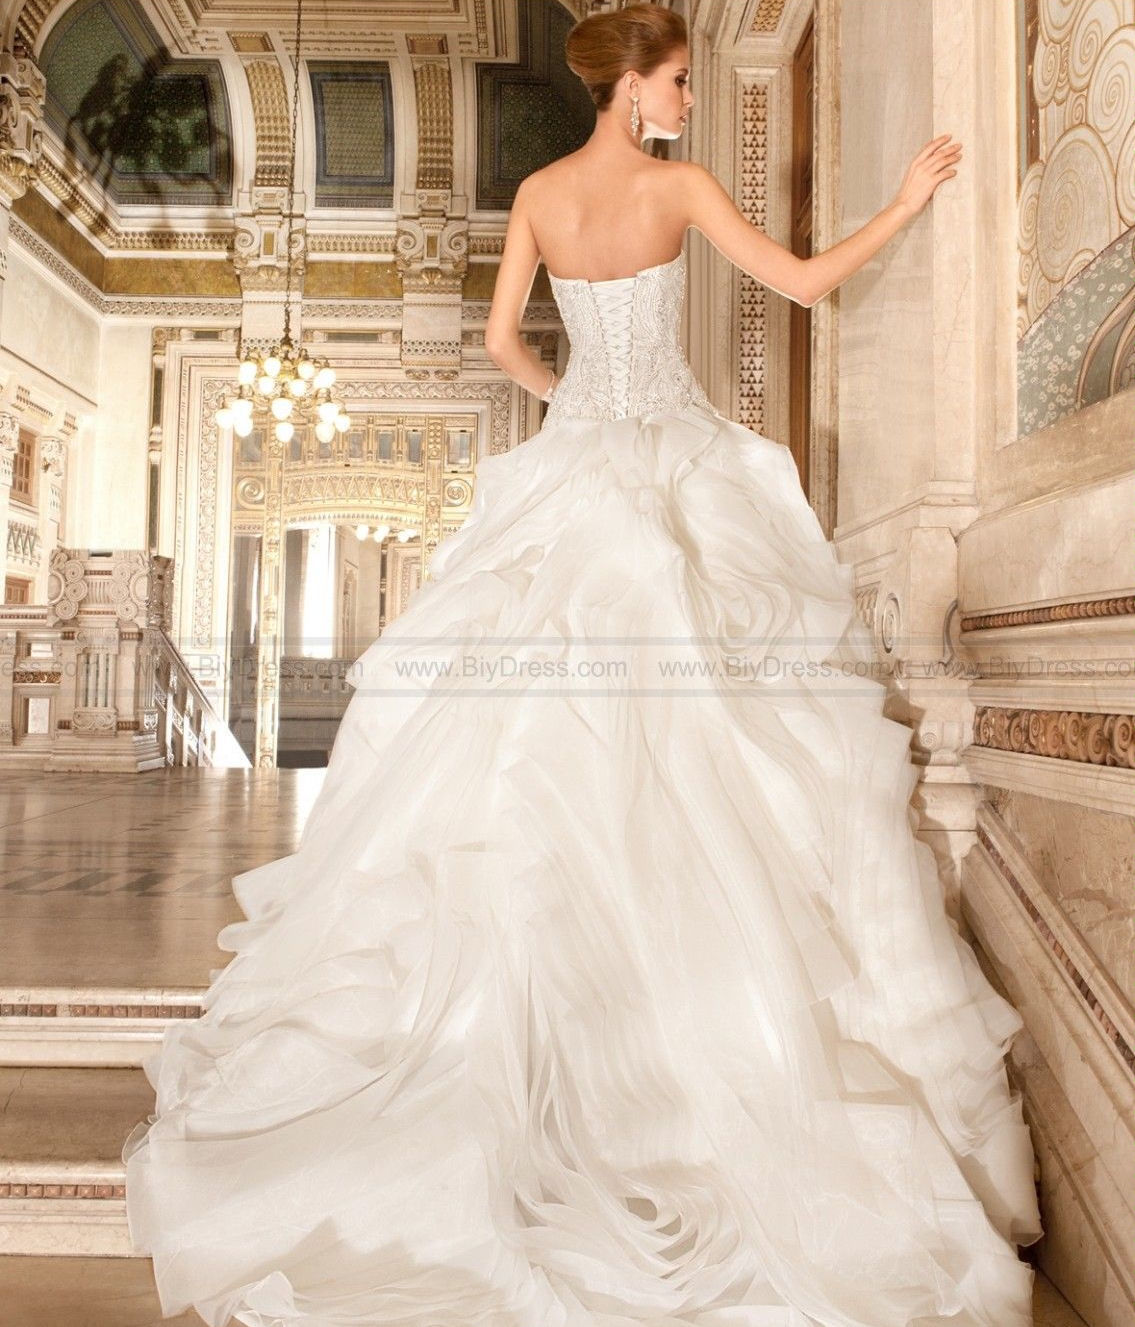 Demetrios Wedding Dress Pictures, Photos, and Images for Facebook ...